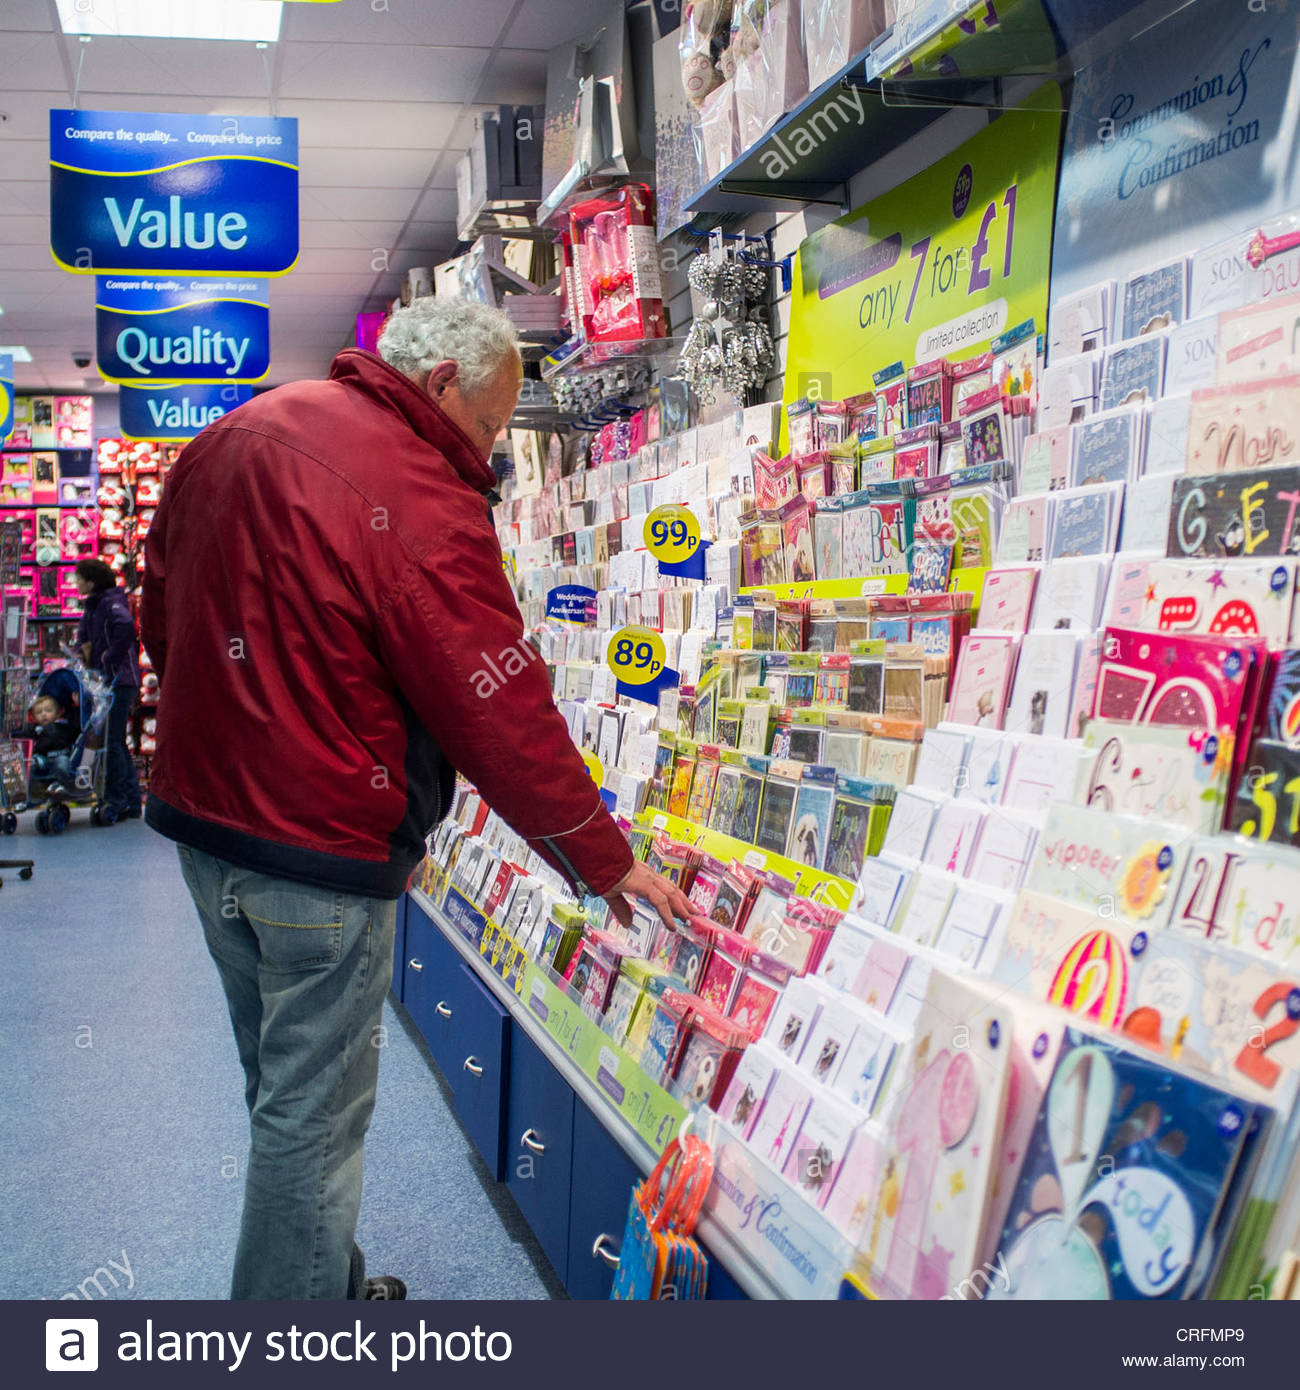 card factory birthday cards ; a-man-browsing-through-birthday-cards-in-a-branch-of-the-card-factory-CRFMP9